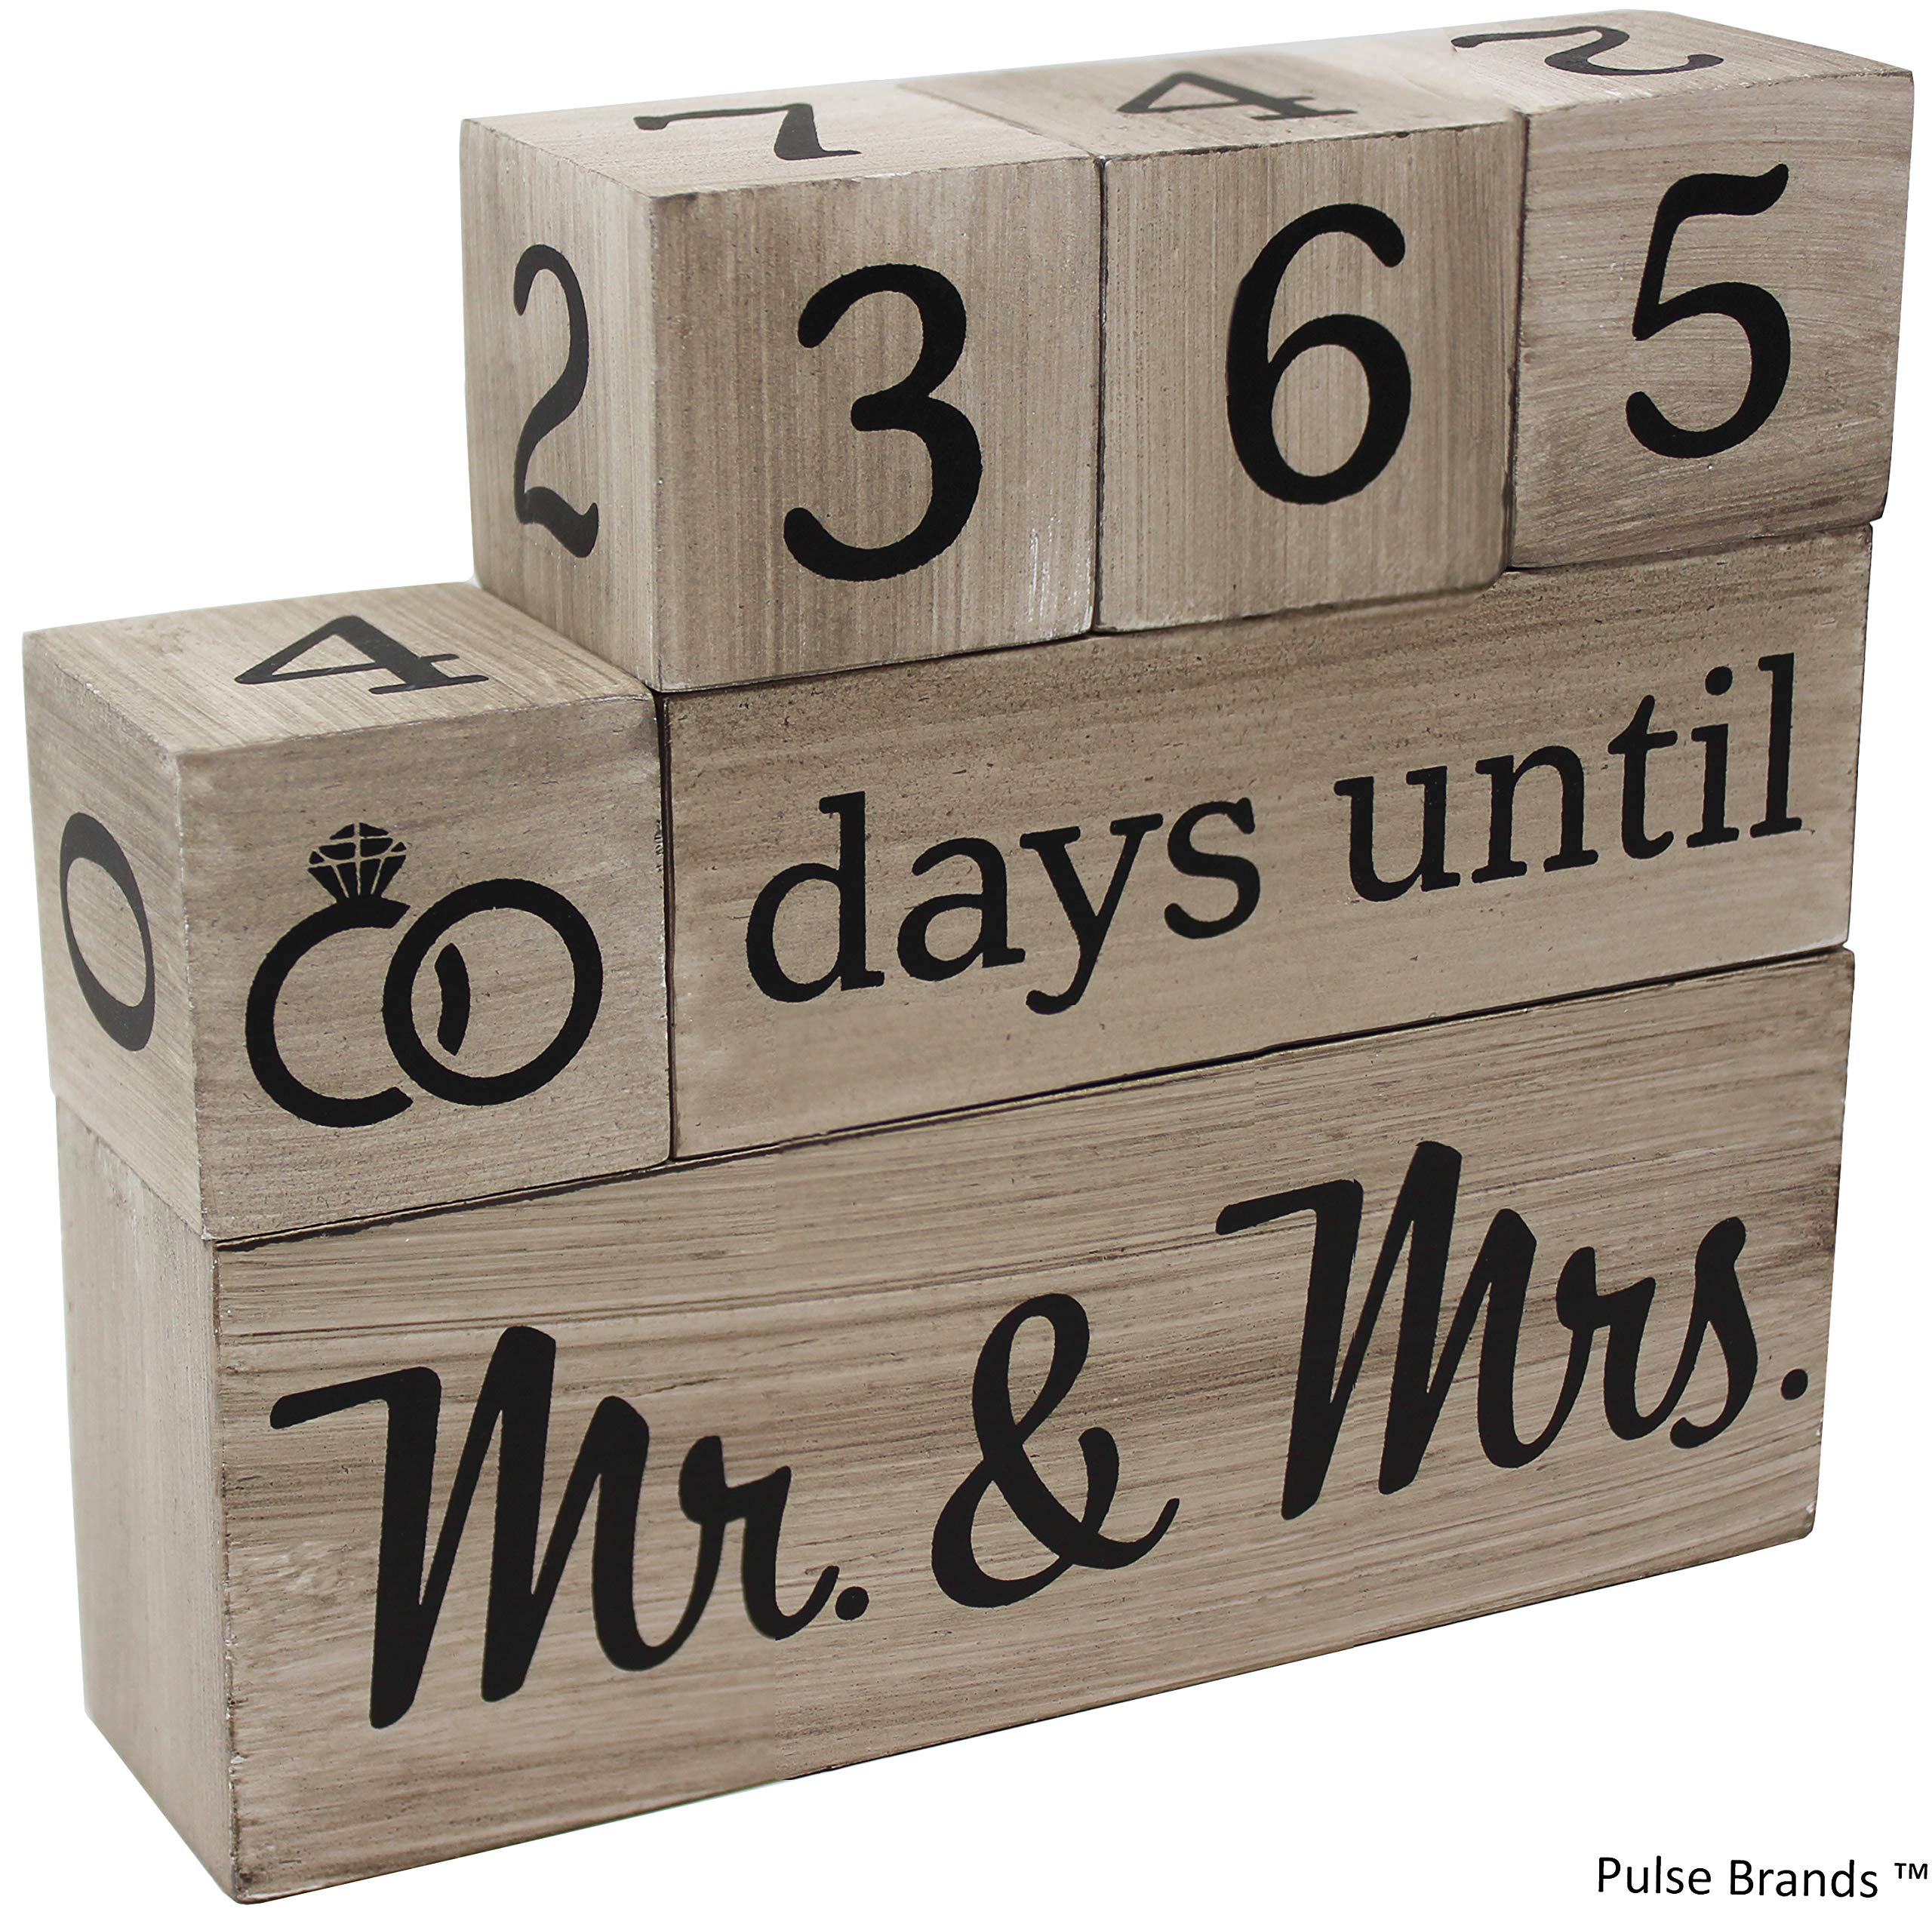 Wedding Countdown Calendar Wooden Blocks - Engagement Gifts - Bride to Be - Bridal Shower Gifts - Bride Gifts - Engagement Gifts for Couples - Engaged - Rustic Finish with Black Numbers by Pulse Brands